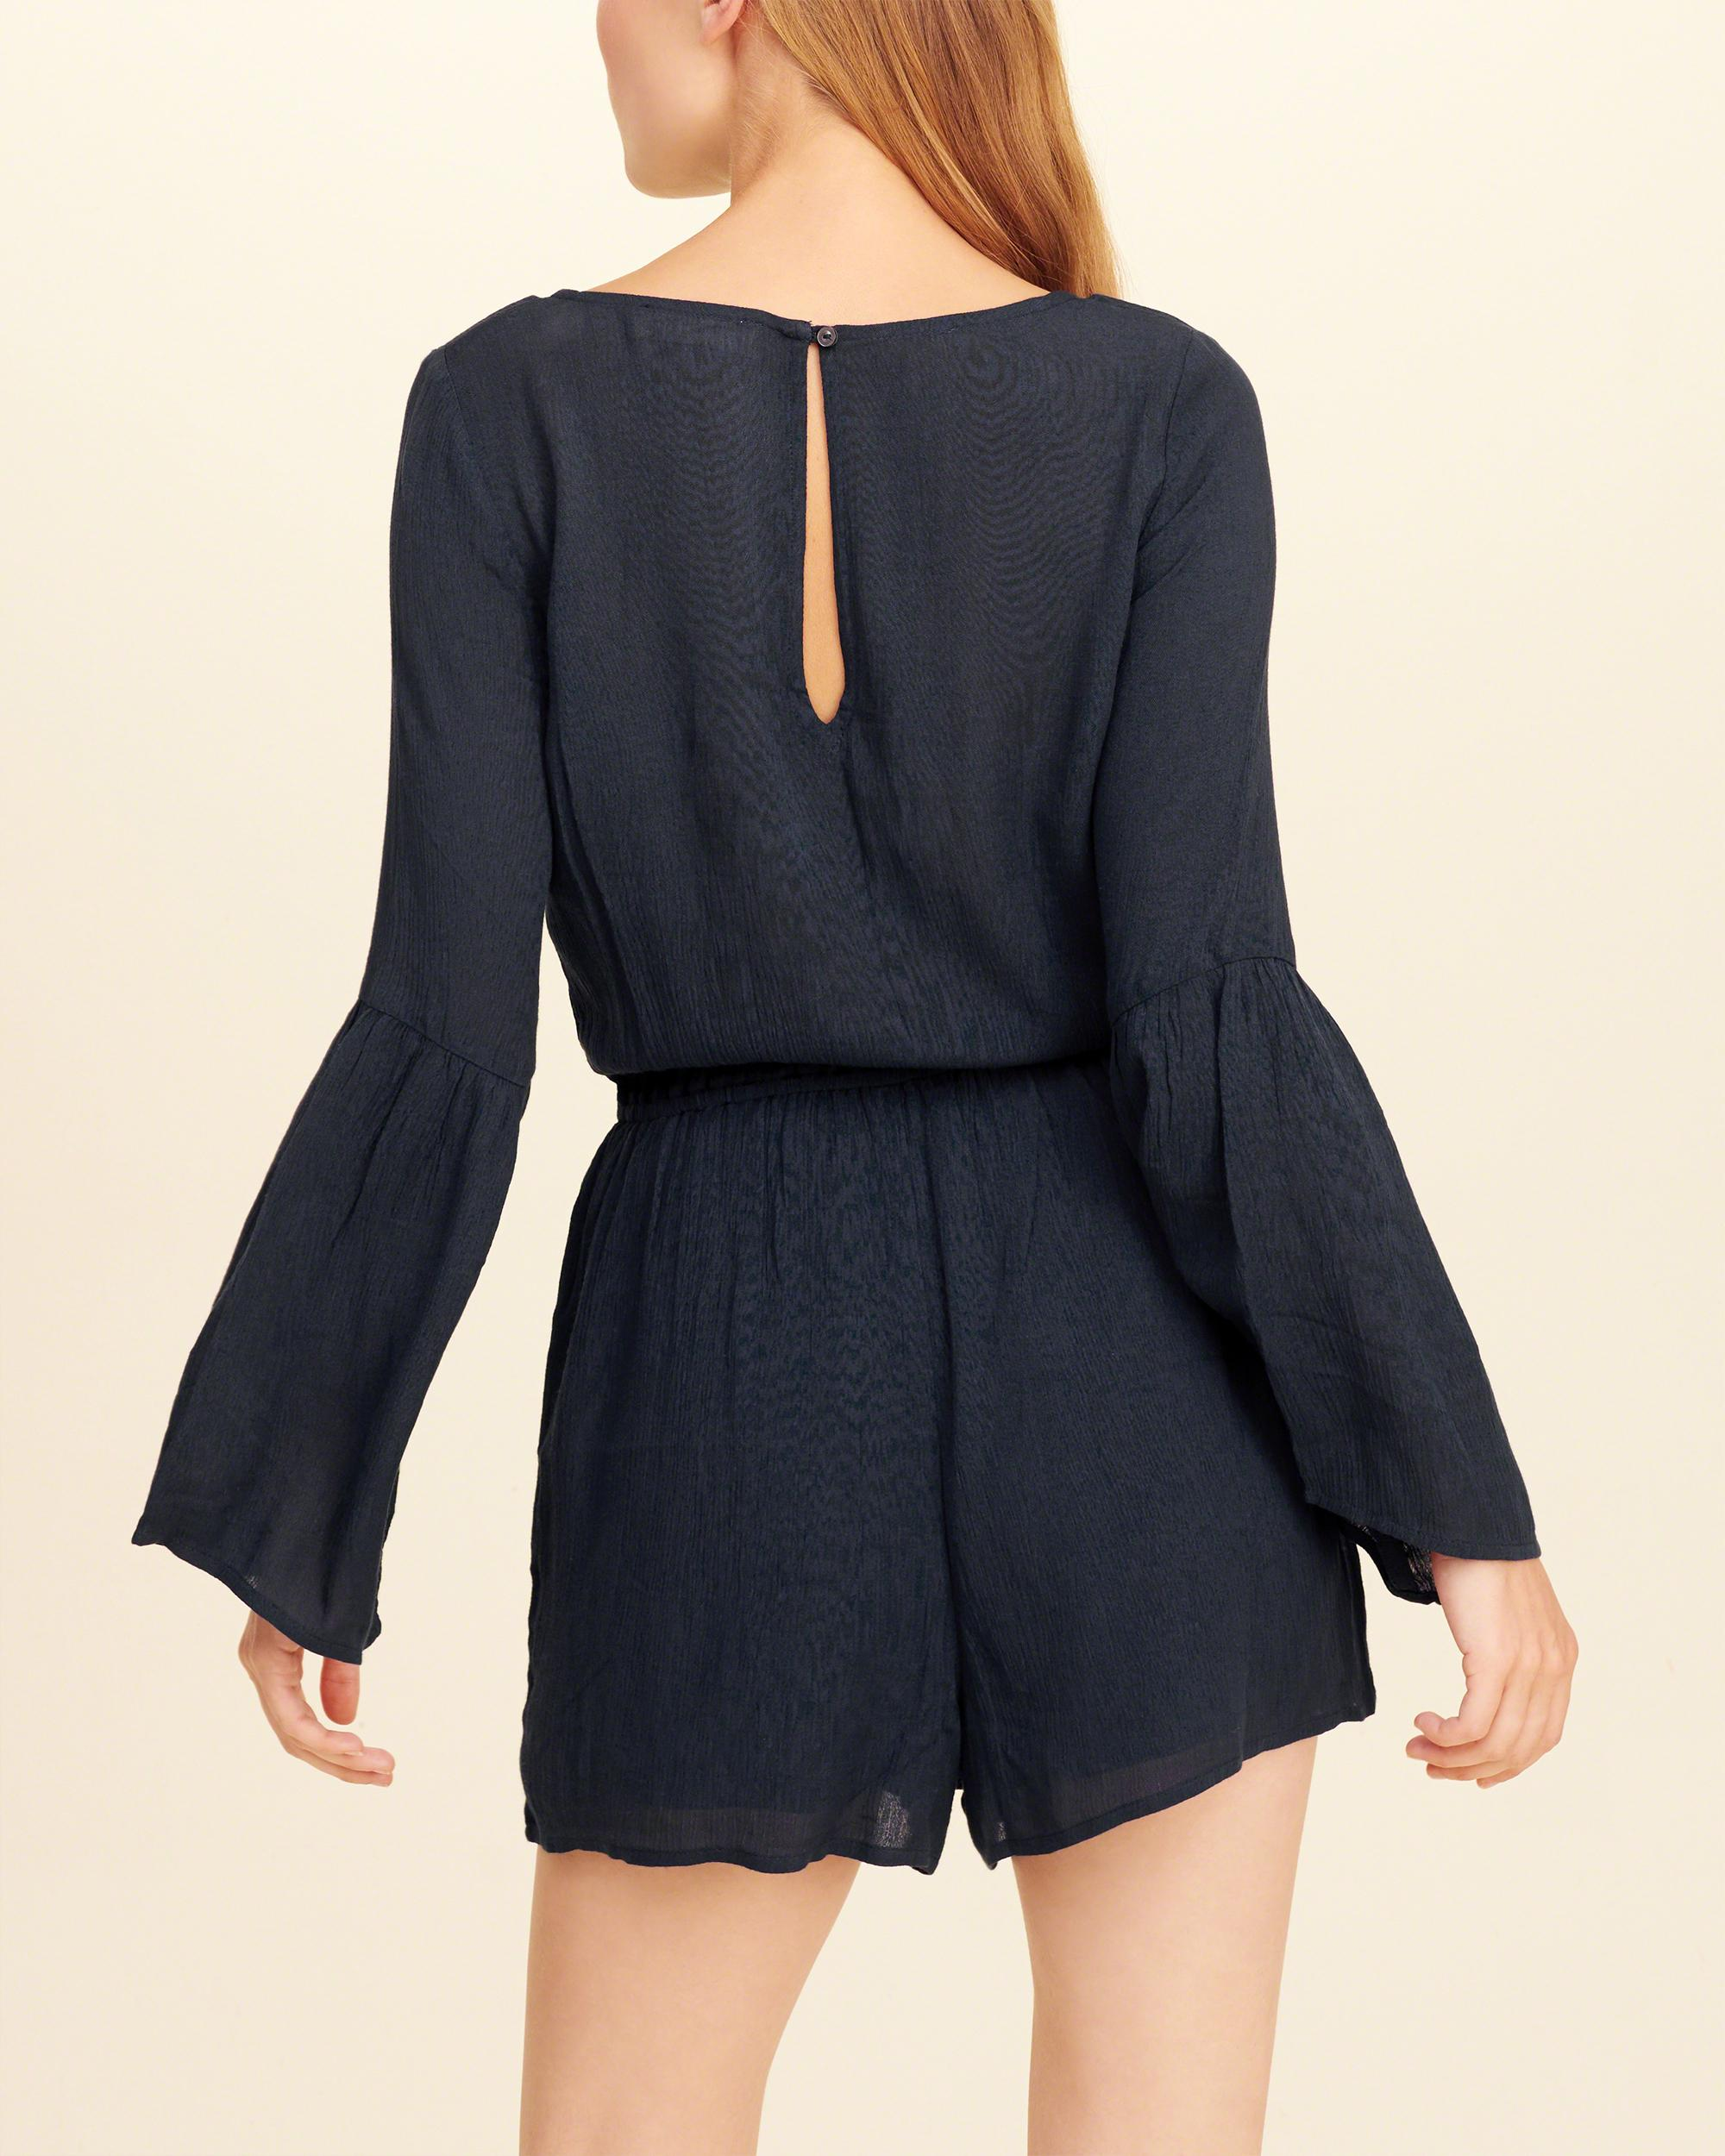 Hollister Synthetic Strappy Bell-sleeve Romper in Navy (Blue)